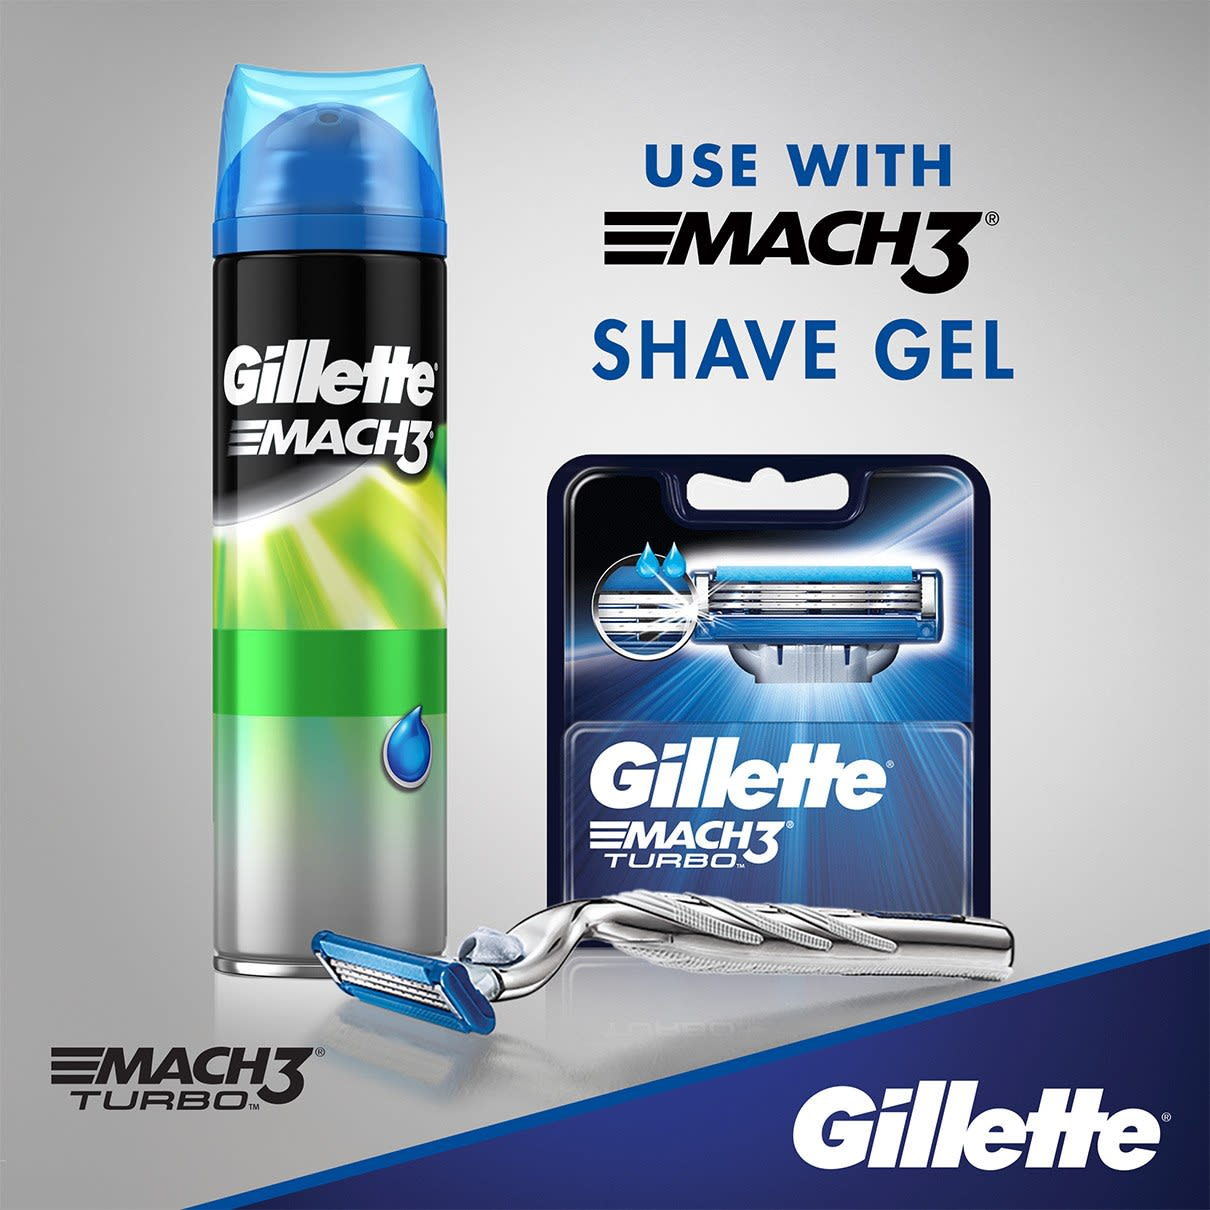 Use with Mach3 shave gel